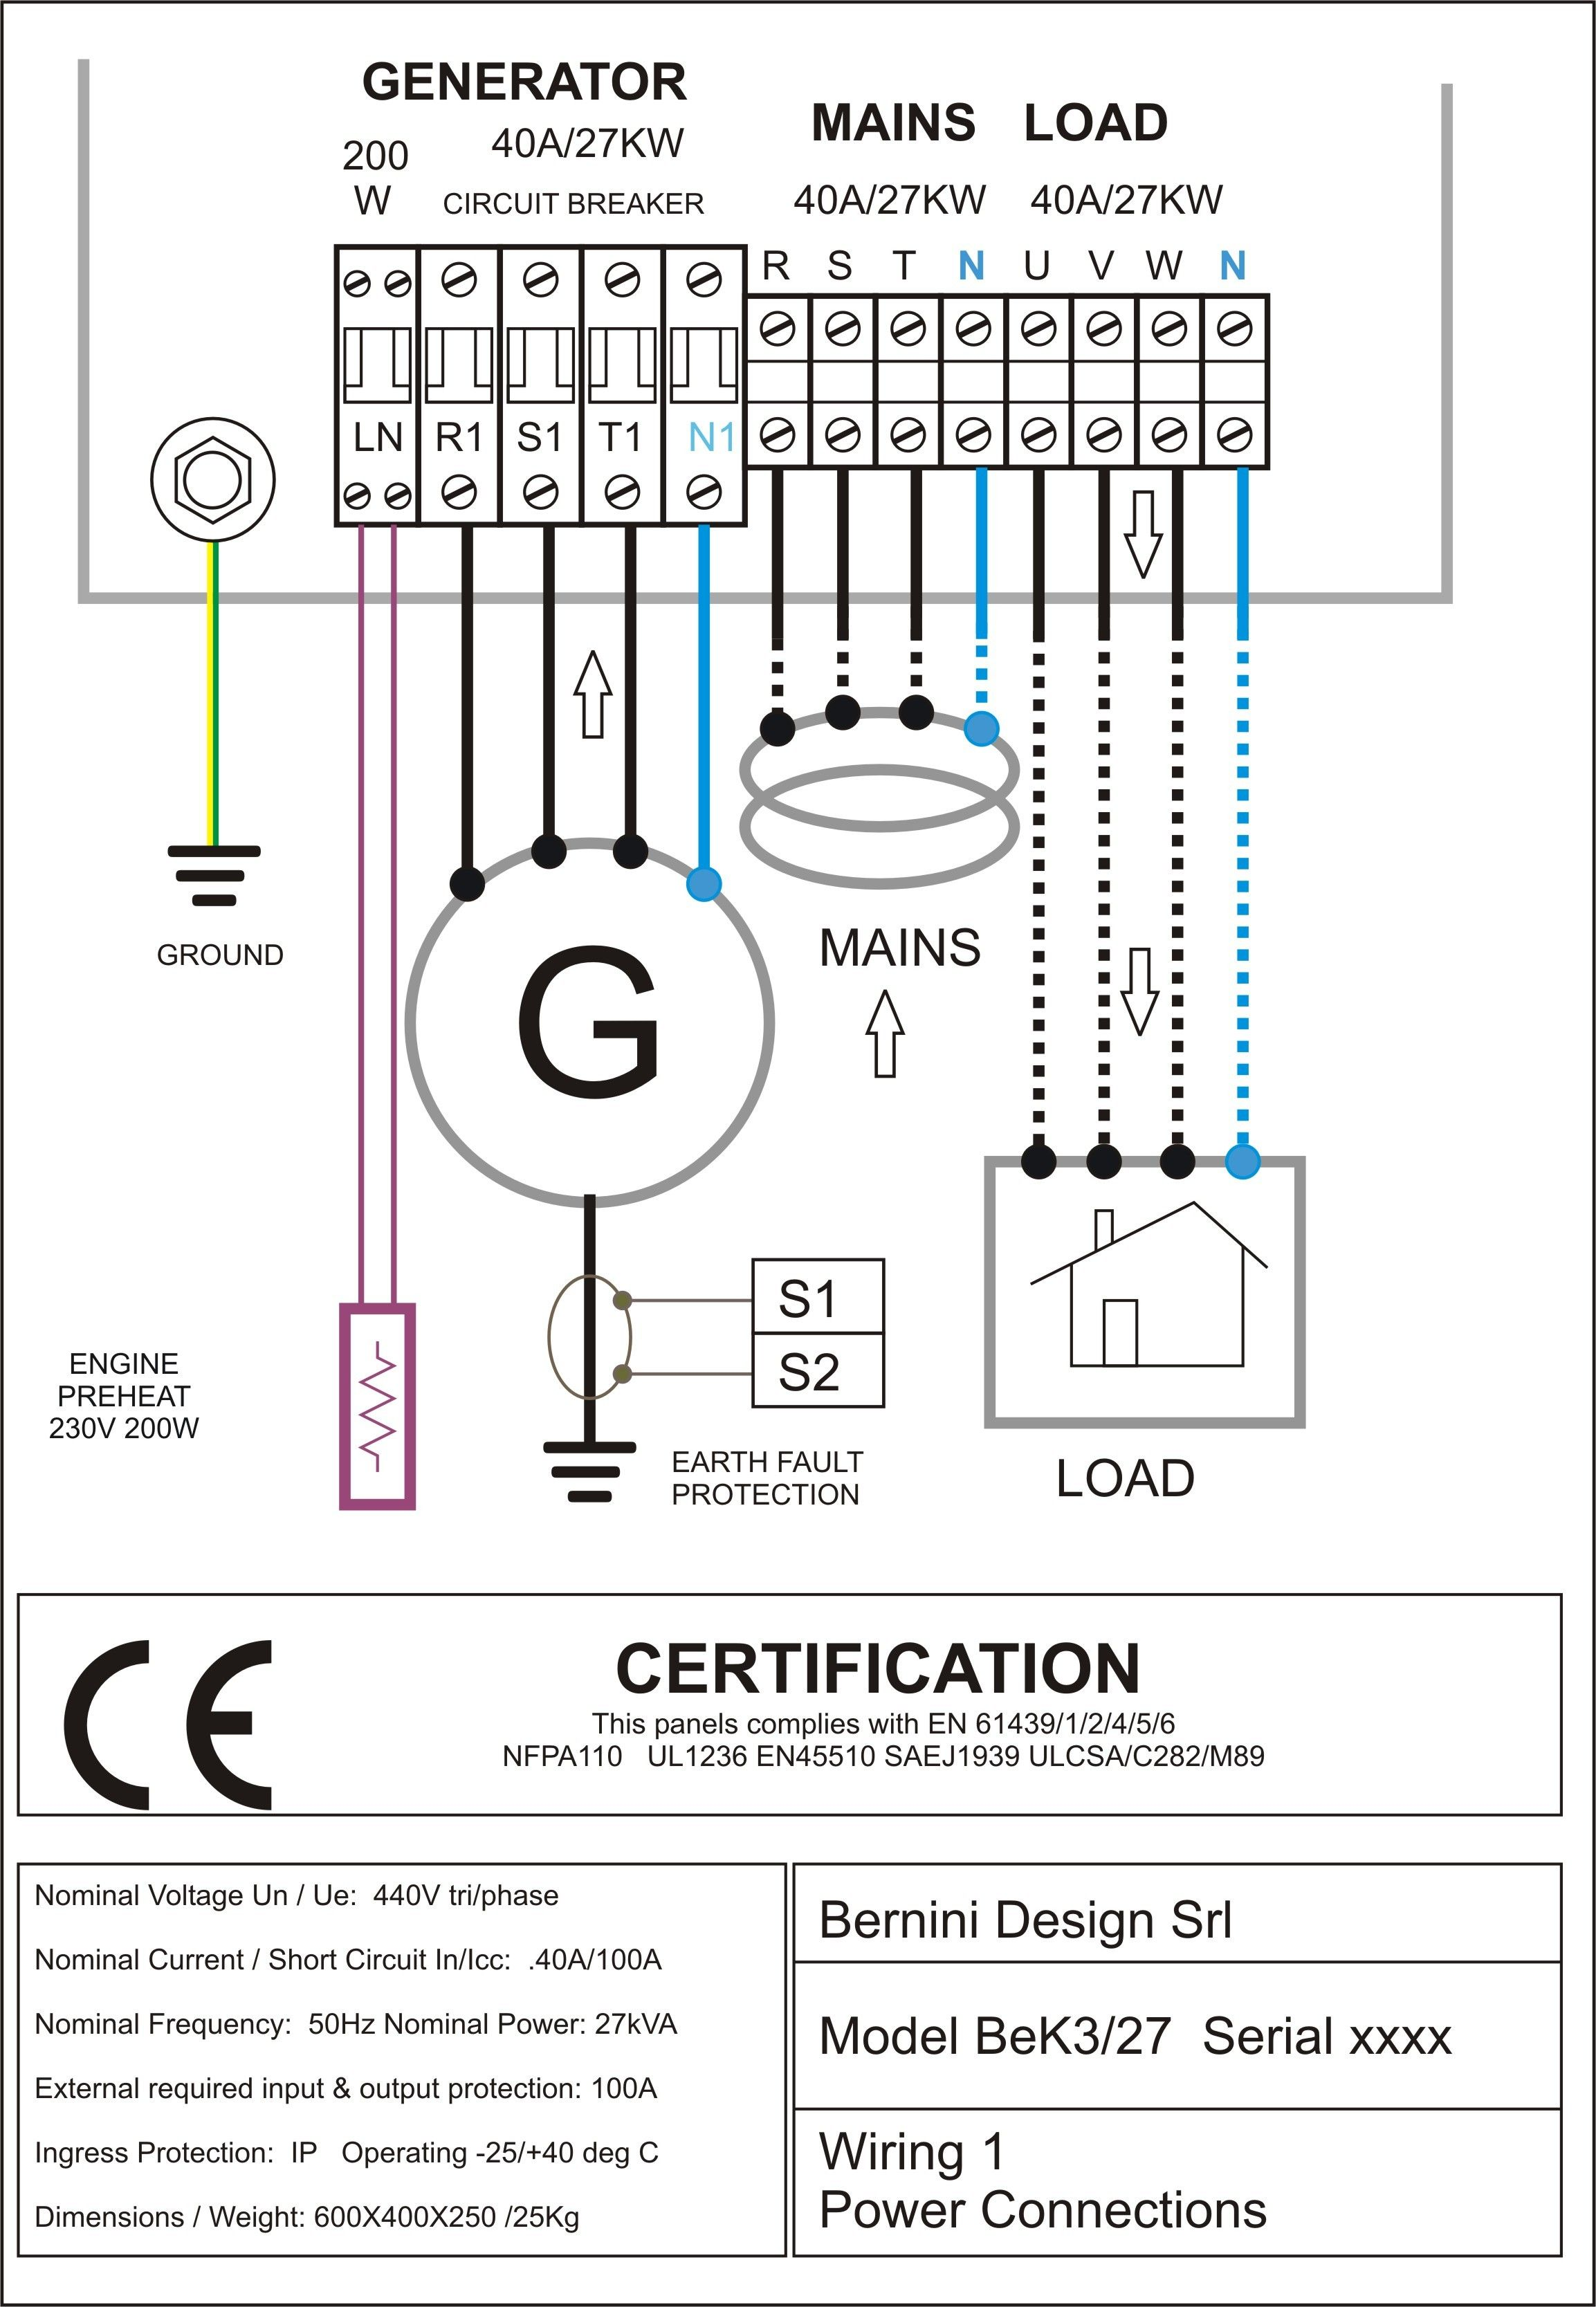 small resolution of new wiring diagram load meaning diagram diagramsample diagramtemplate